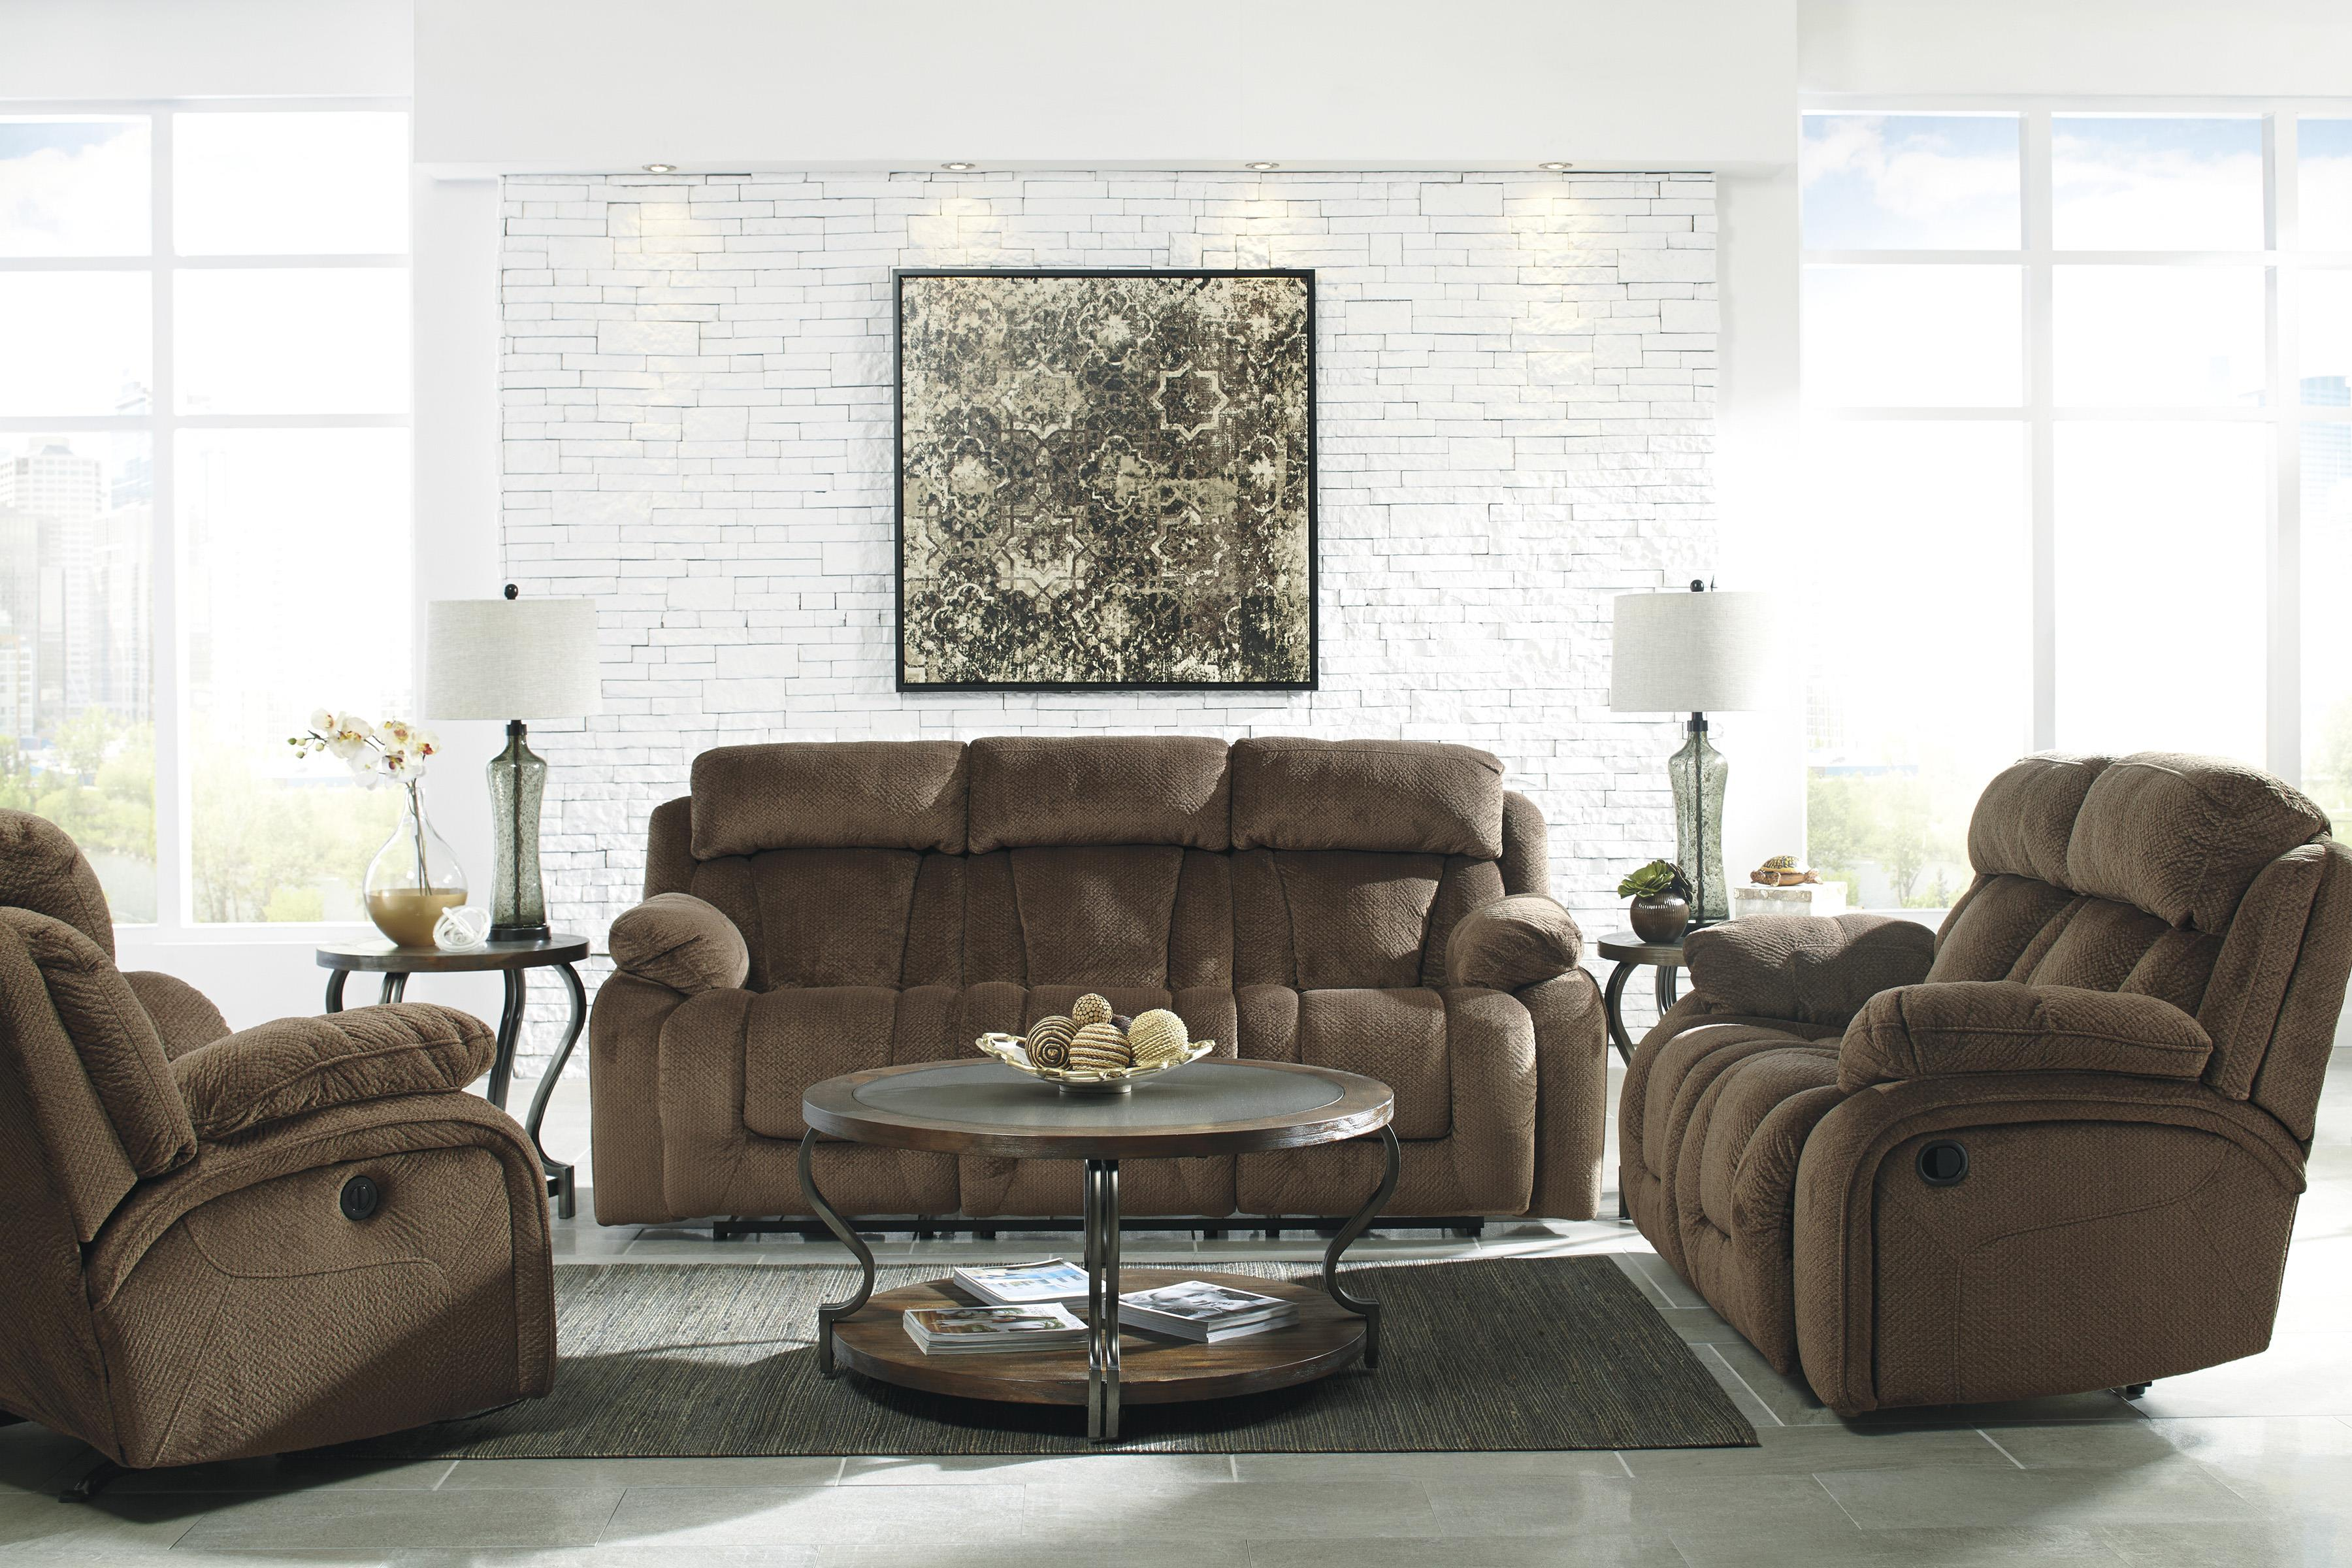 Signature Design by Ashley Stricklin Reclining Living Room Group - Item Number: 86503 Living Room Group 3